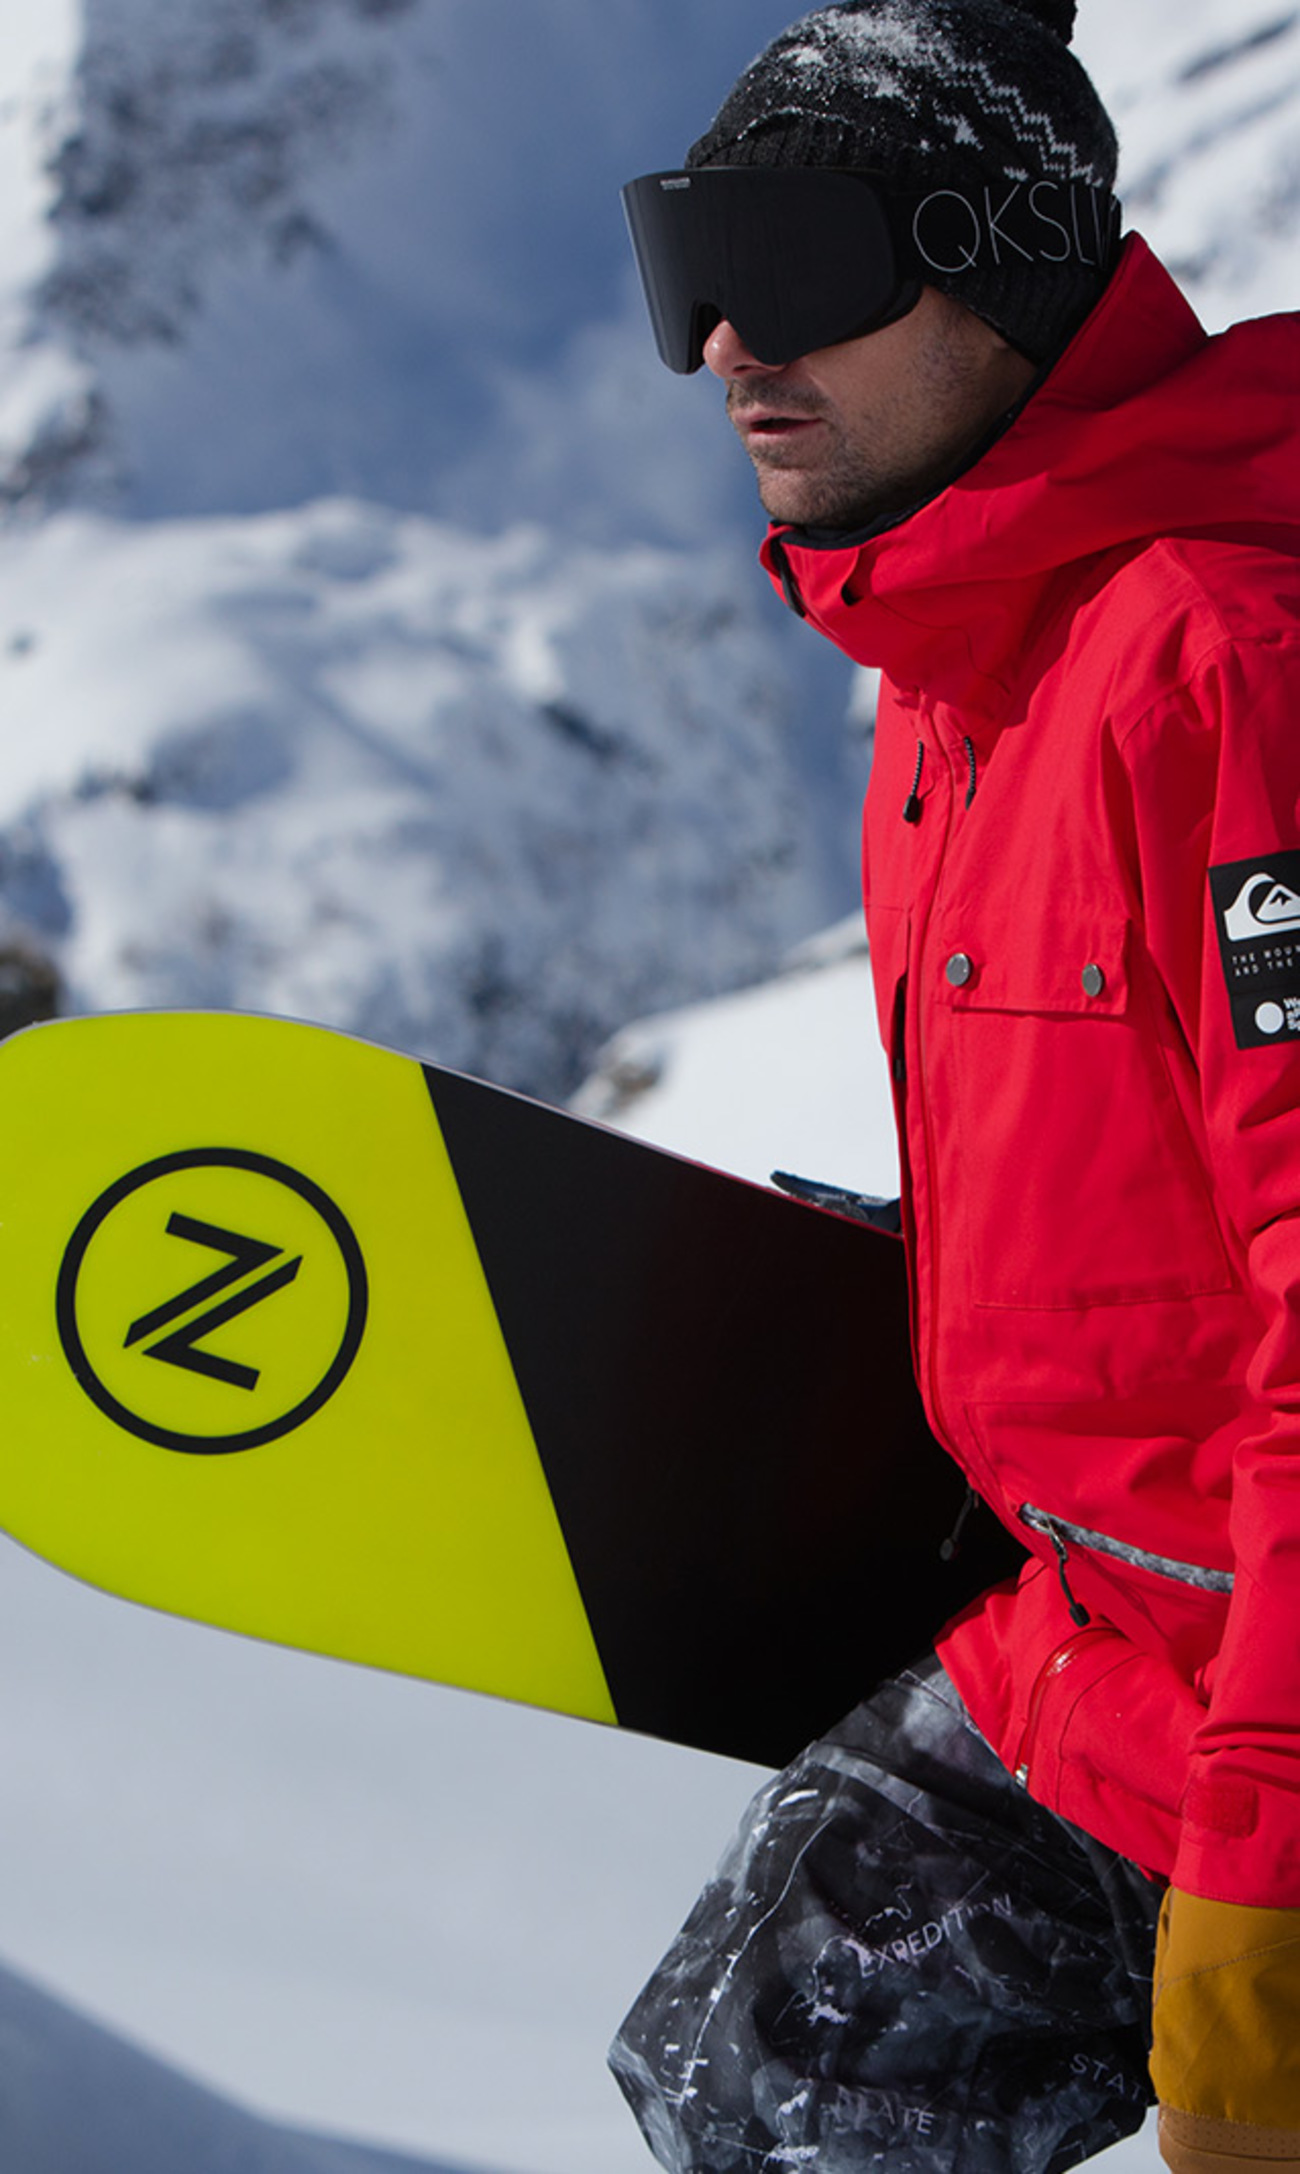 ddf773c7 Snow Higline Series - Shop the New Snowboard Jackets | Quiksilver